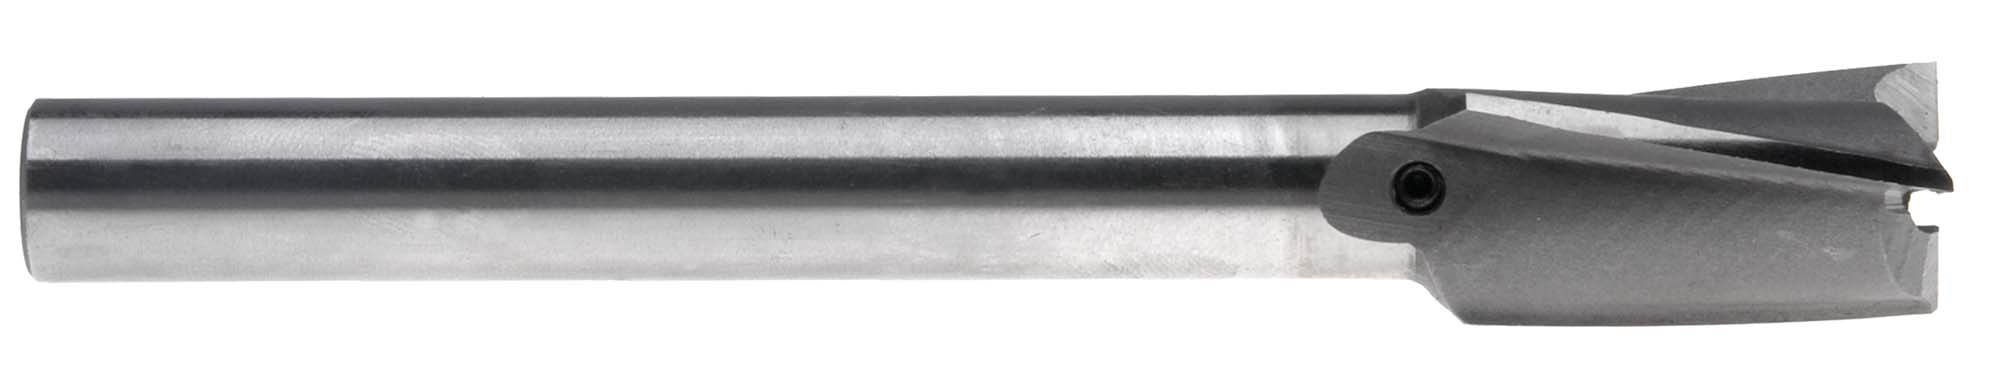 "21/32"" Straight Shank Counterbore, Interchangeable Pilot Type, High Speed Steel"